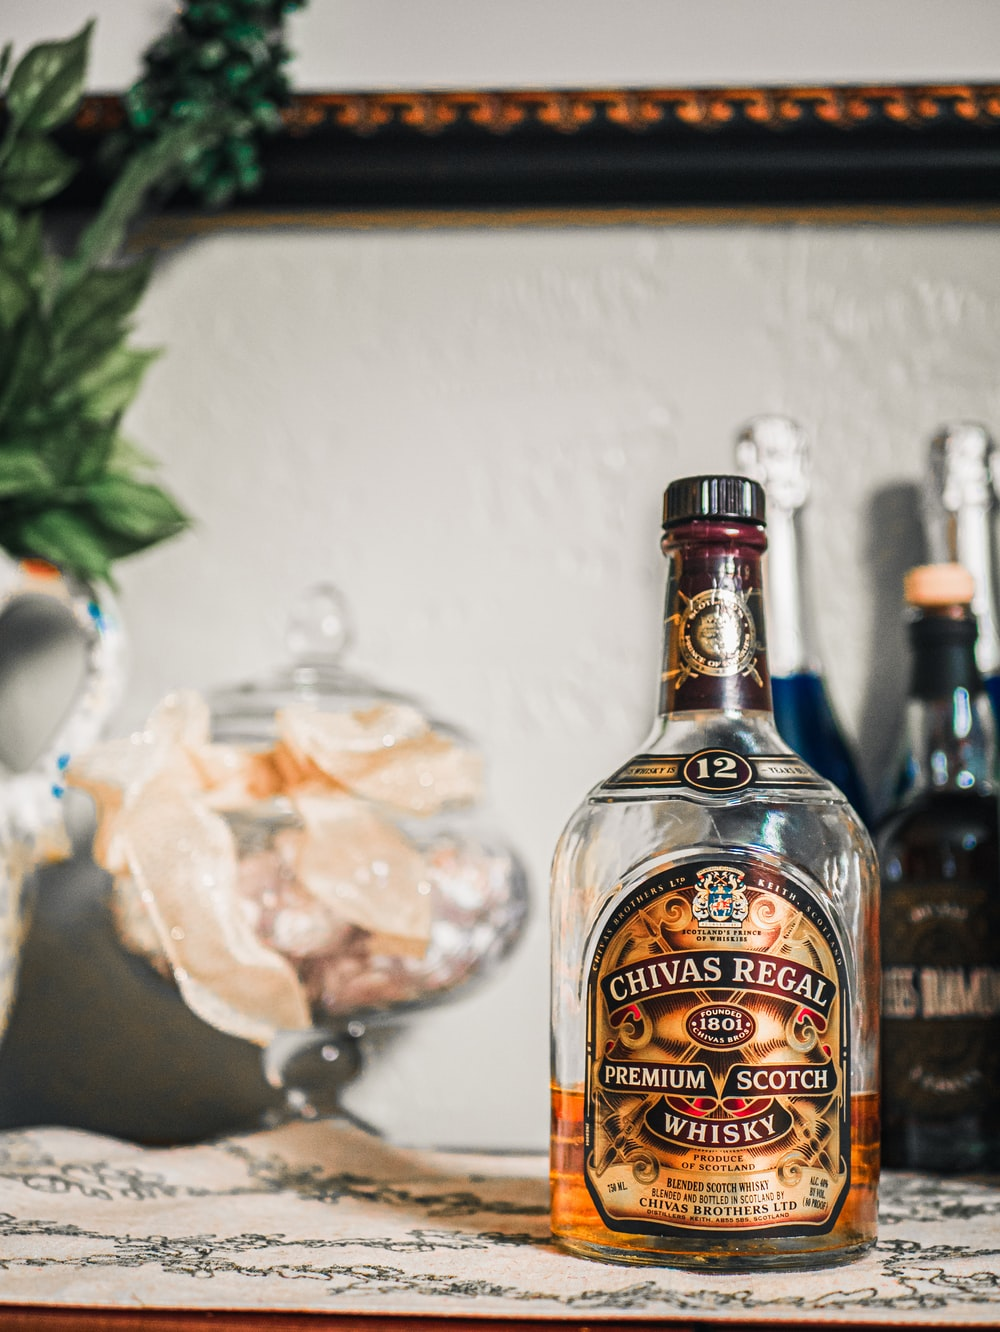 Chivas Regal whisky bottle